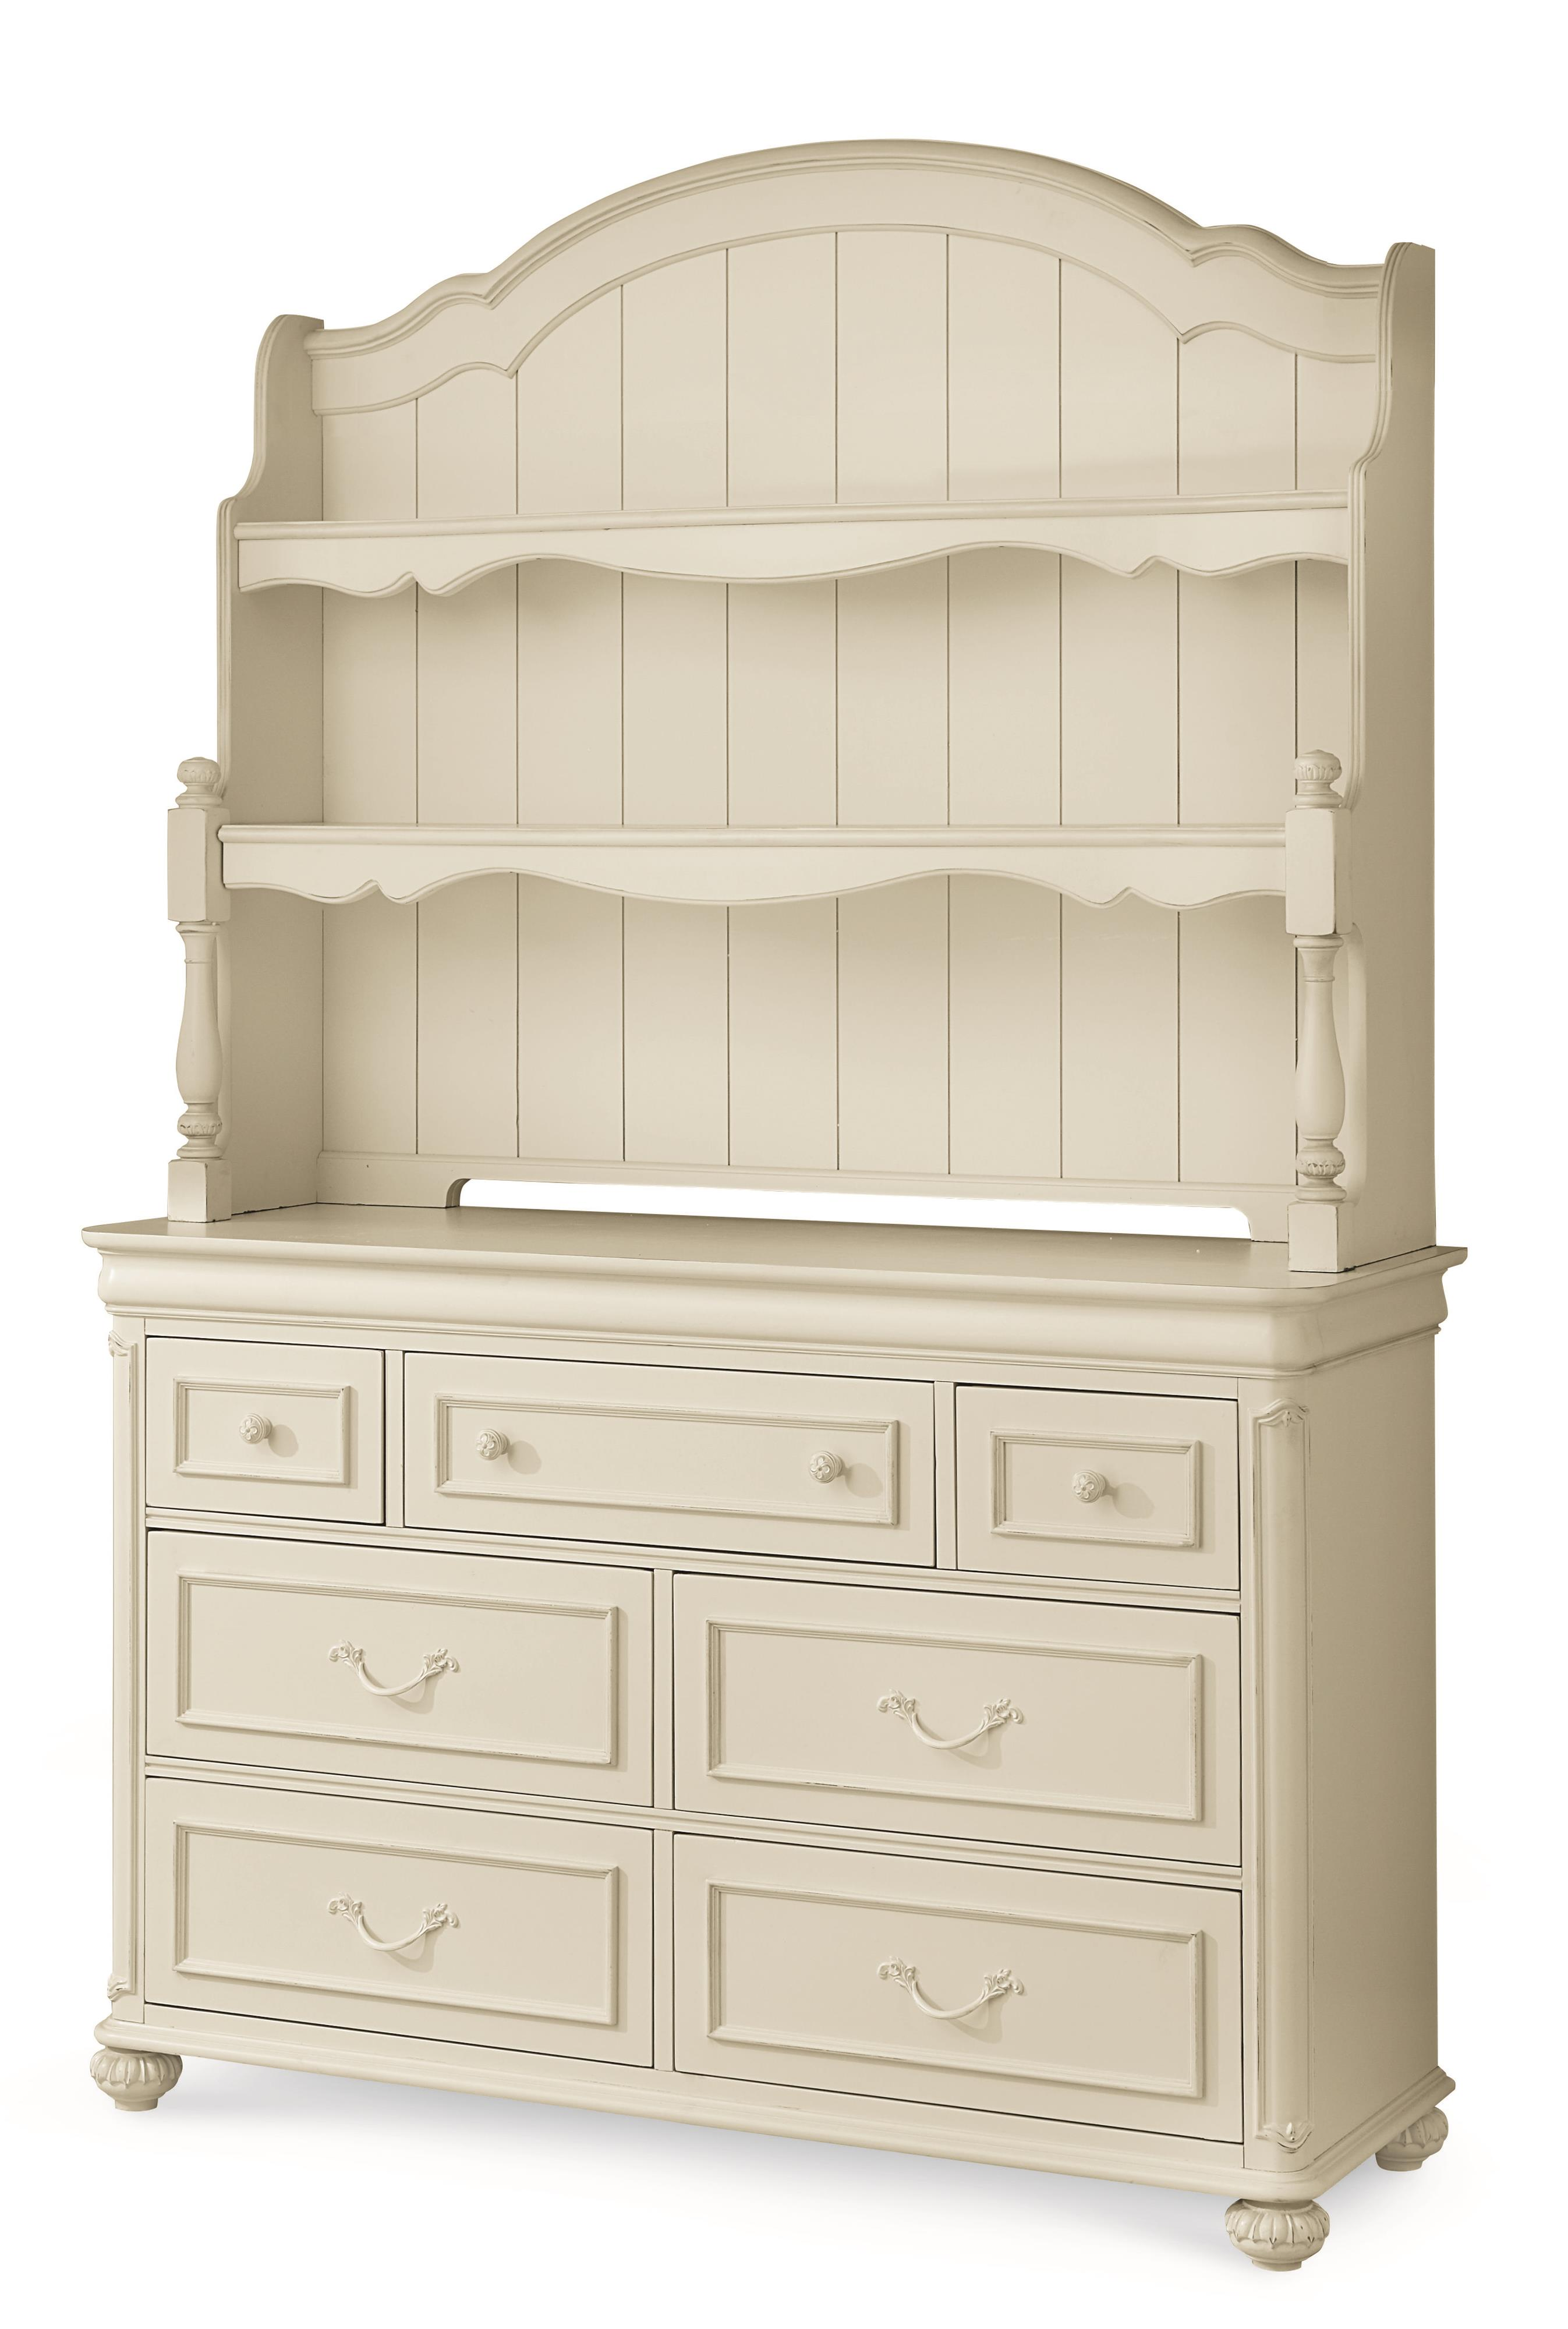 Legacy Classic Kids Charlotte Dresser with Changing Hutch - Item Number: 3850-1100+7201